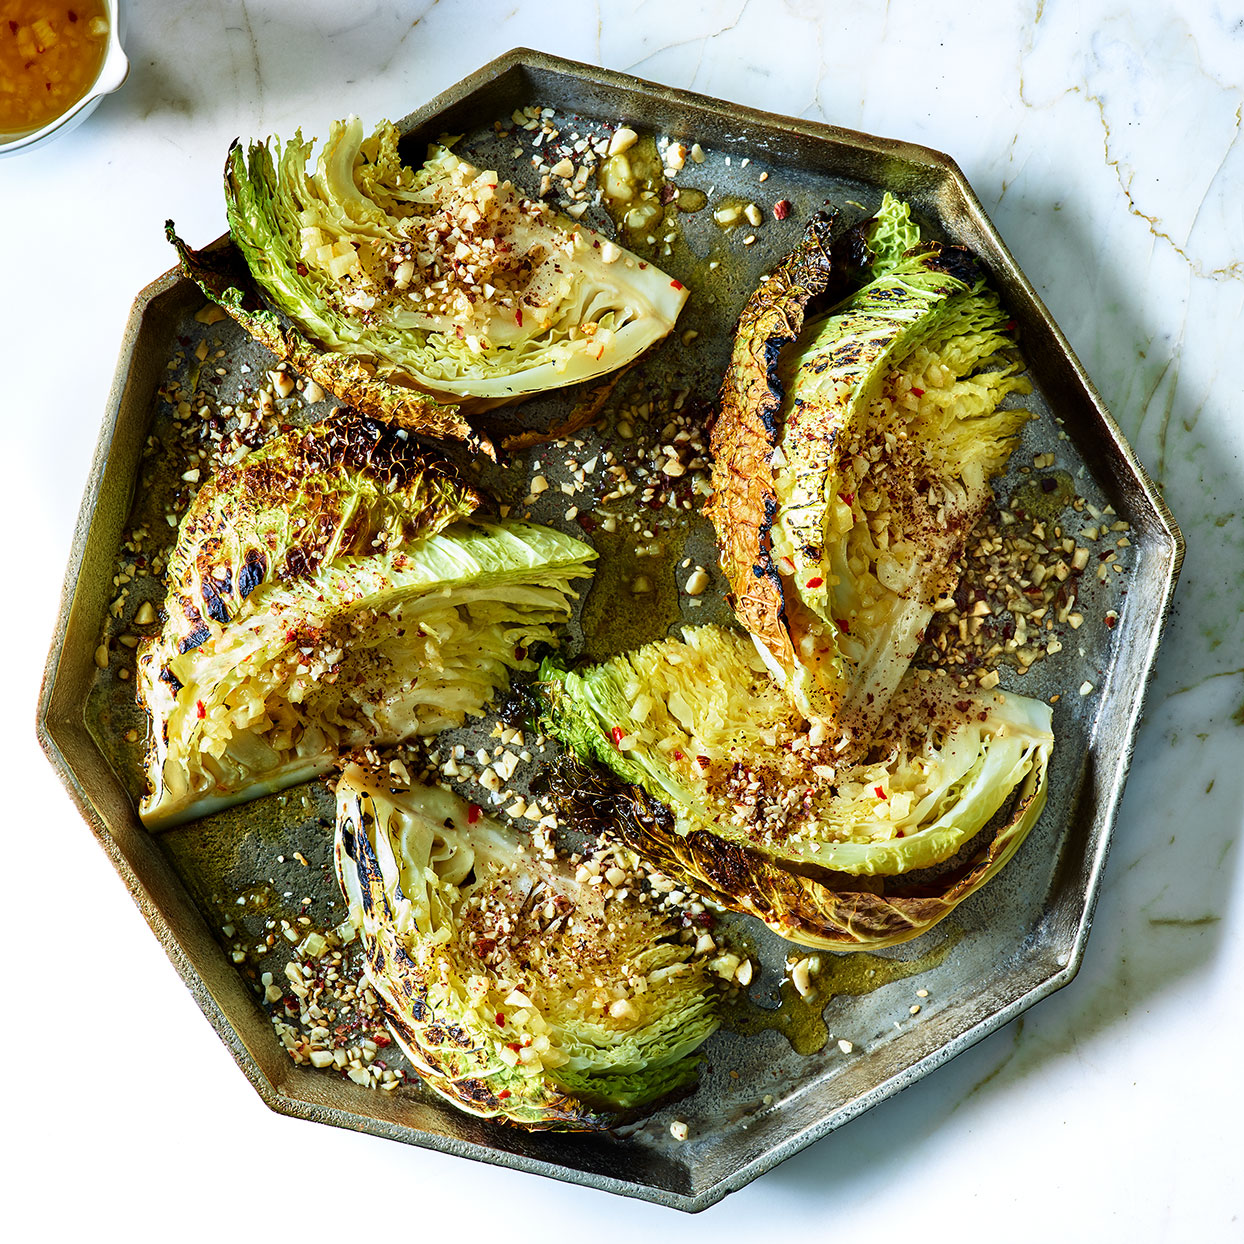 Easy Savoy cabbage recipes can be far and few between, especially ones that are as delicious as this whole roasted cabbage. The outer cabbage leaves blacken during the long cooking time, but when removed they reveal a meltingly tender center. Orange blossom water adds delicate aroma to the vinaigrette that's drizzled on top. Serve alongside roast beef or pork, or over mashed potatoes as a main course.